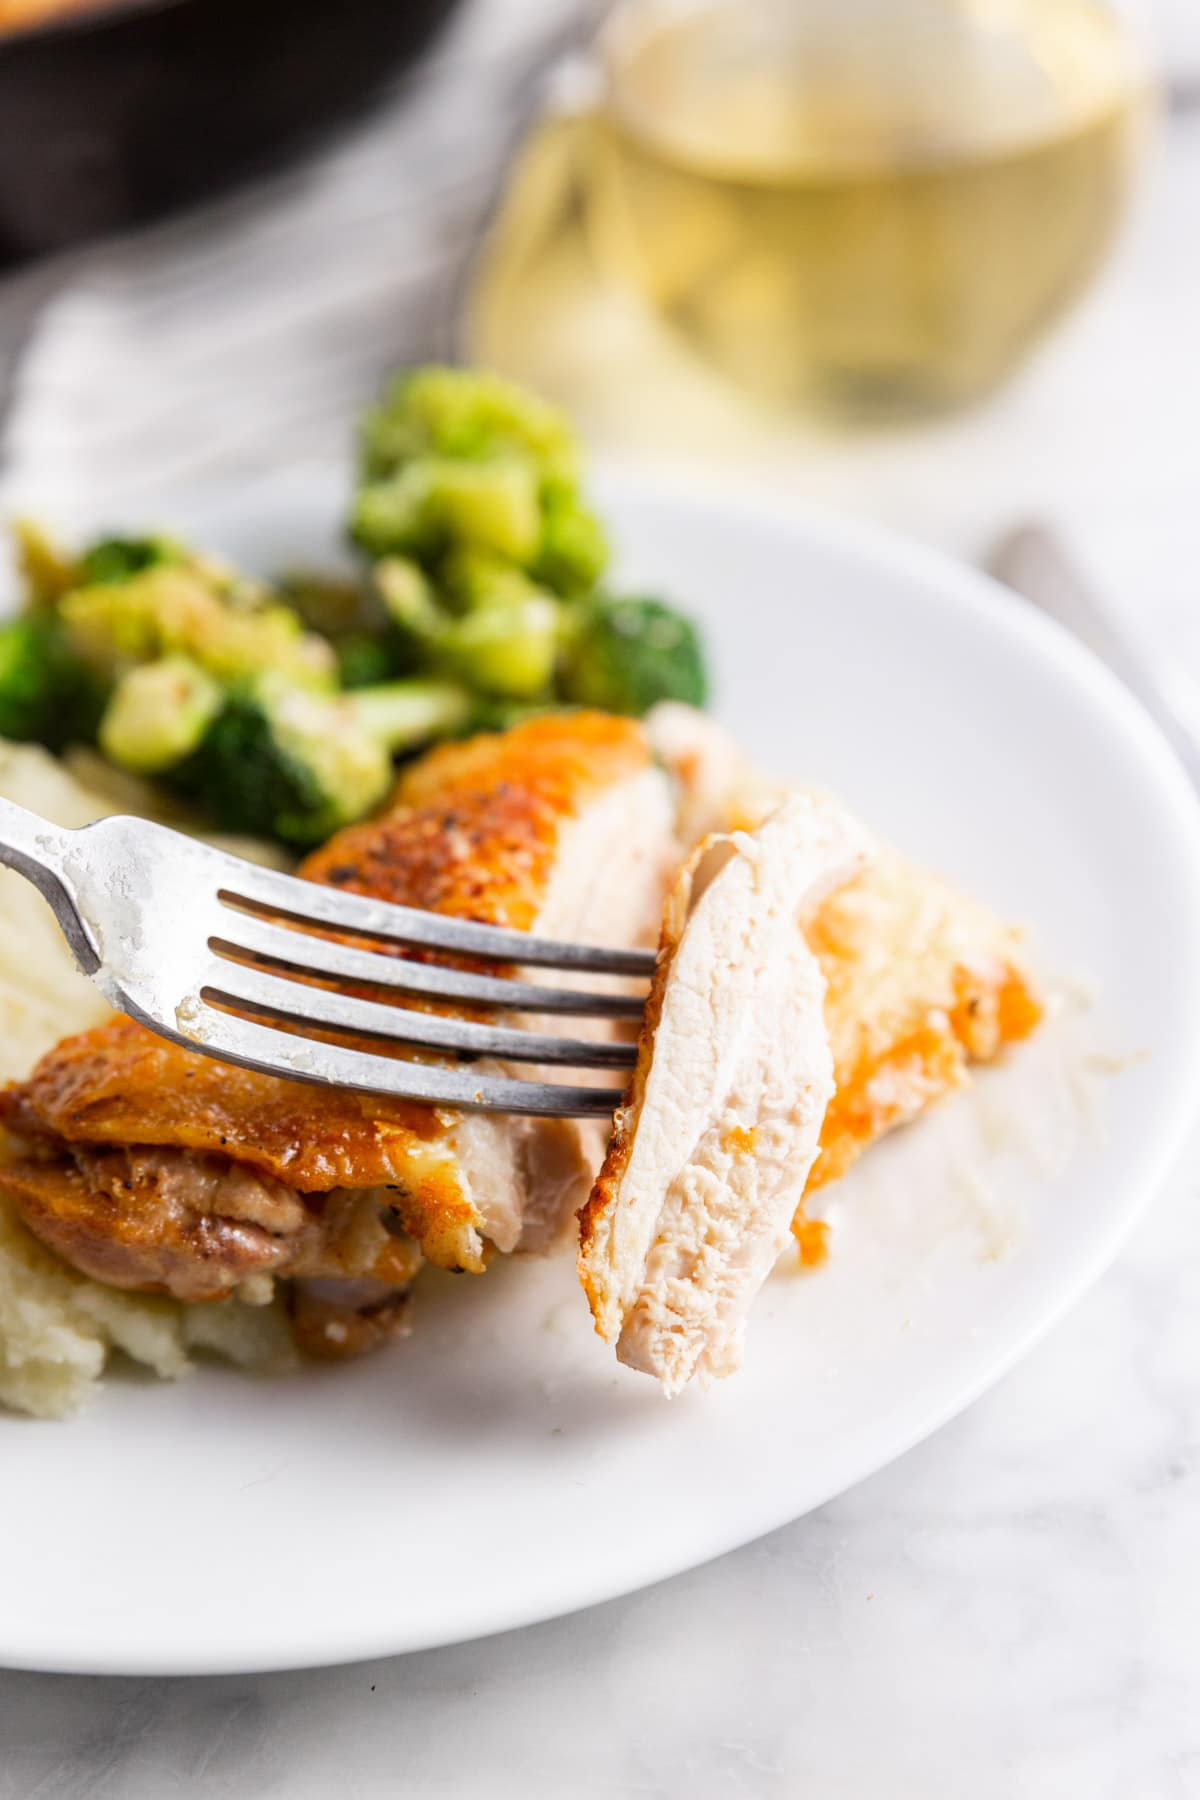 A plate with roasted chicken thighs with broccoli and mashed potatoes and a fork holding a slice of chicken.